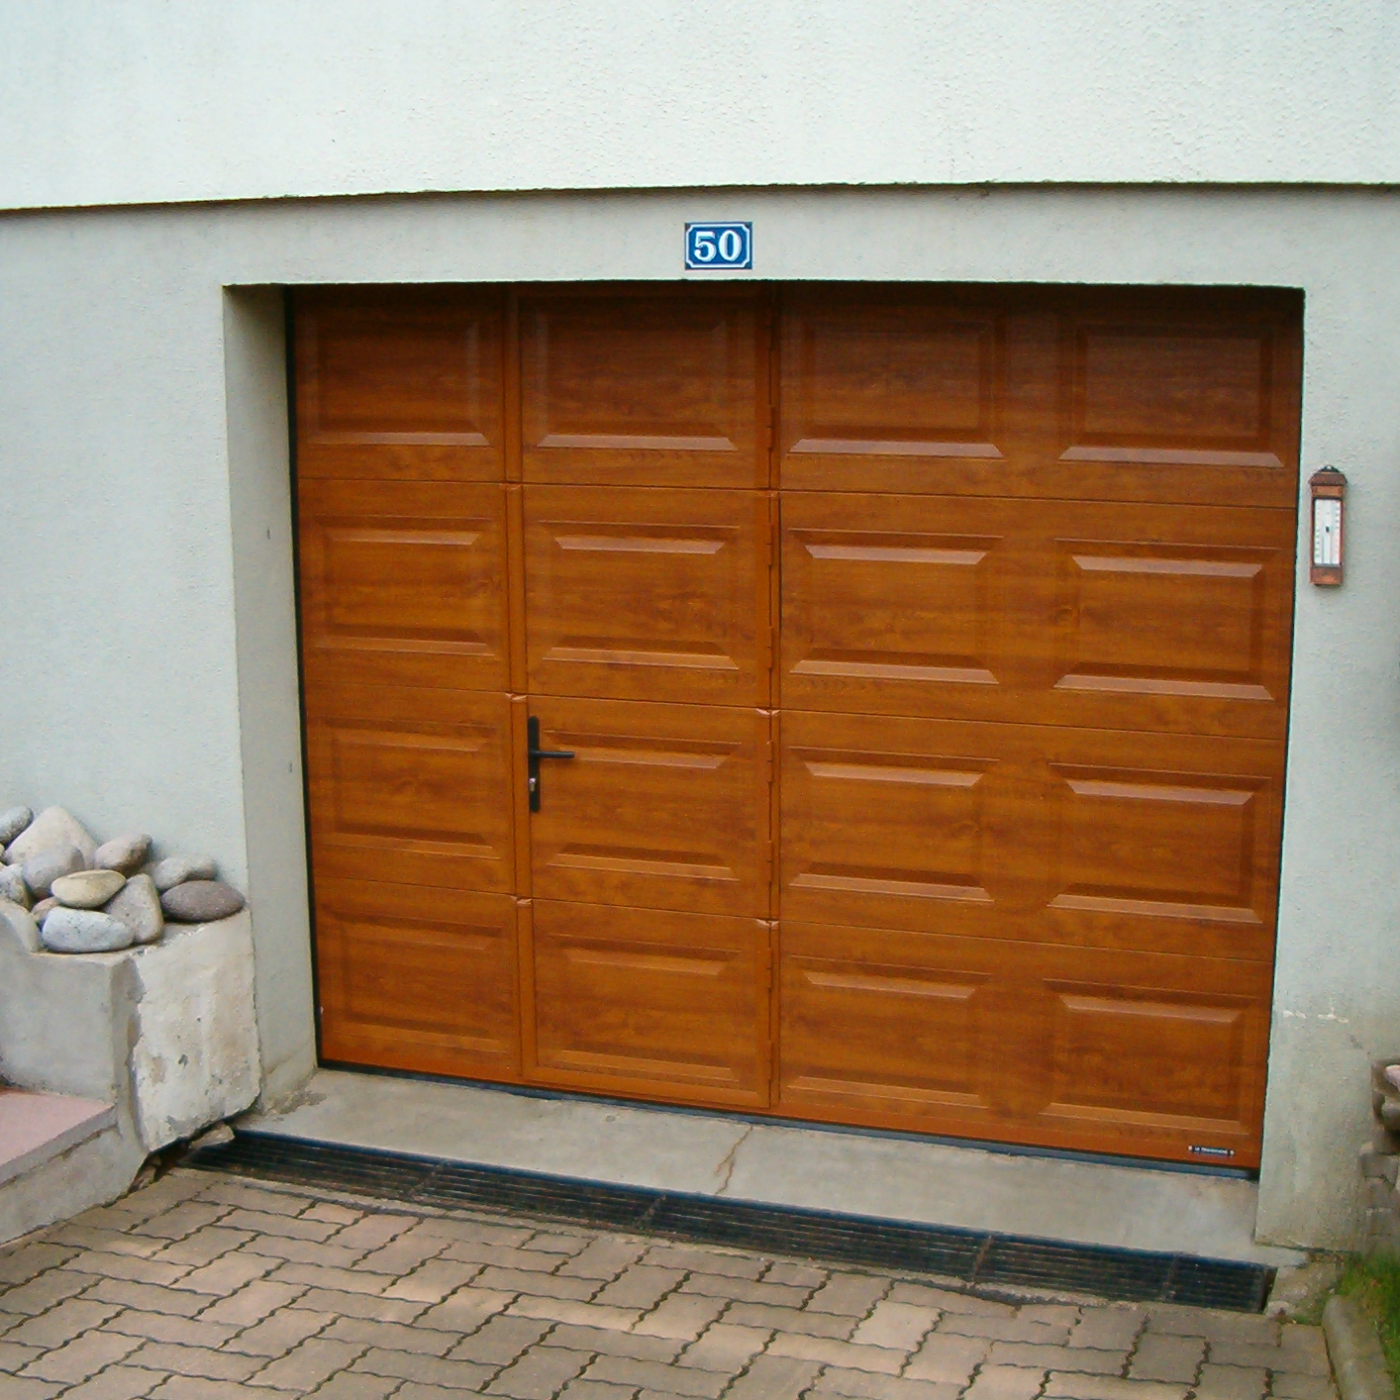 Porte de garage sectionnelle avec portillon la toulousaine for Porte de garage sectionnelle avec portillon sur mesure